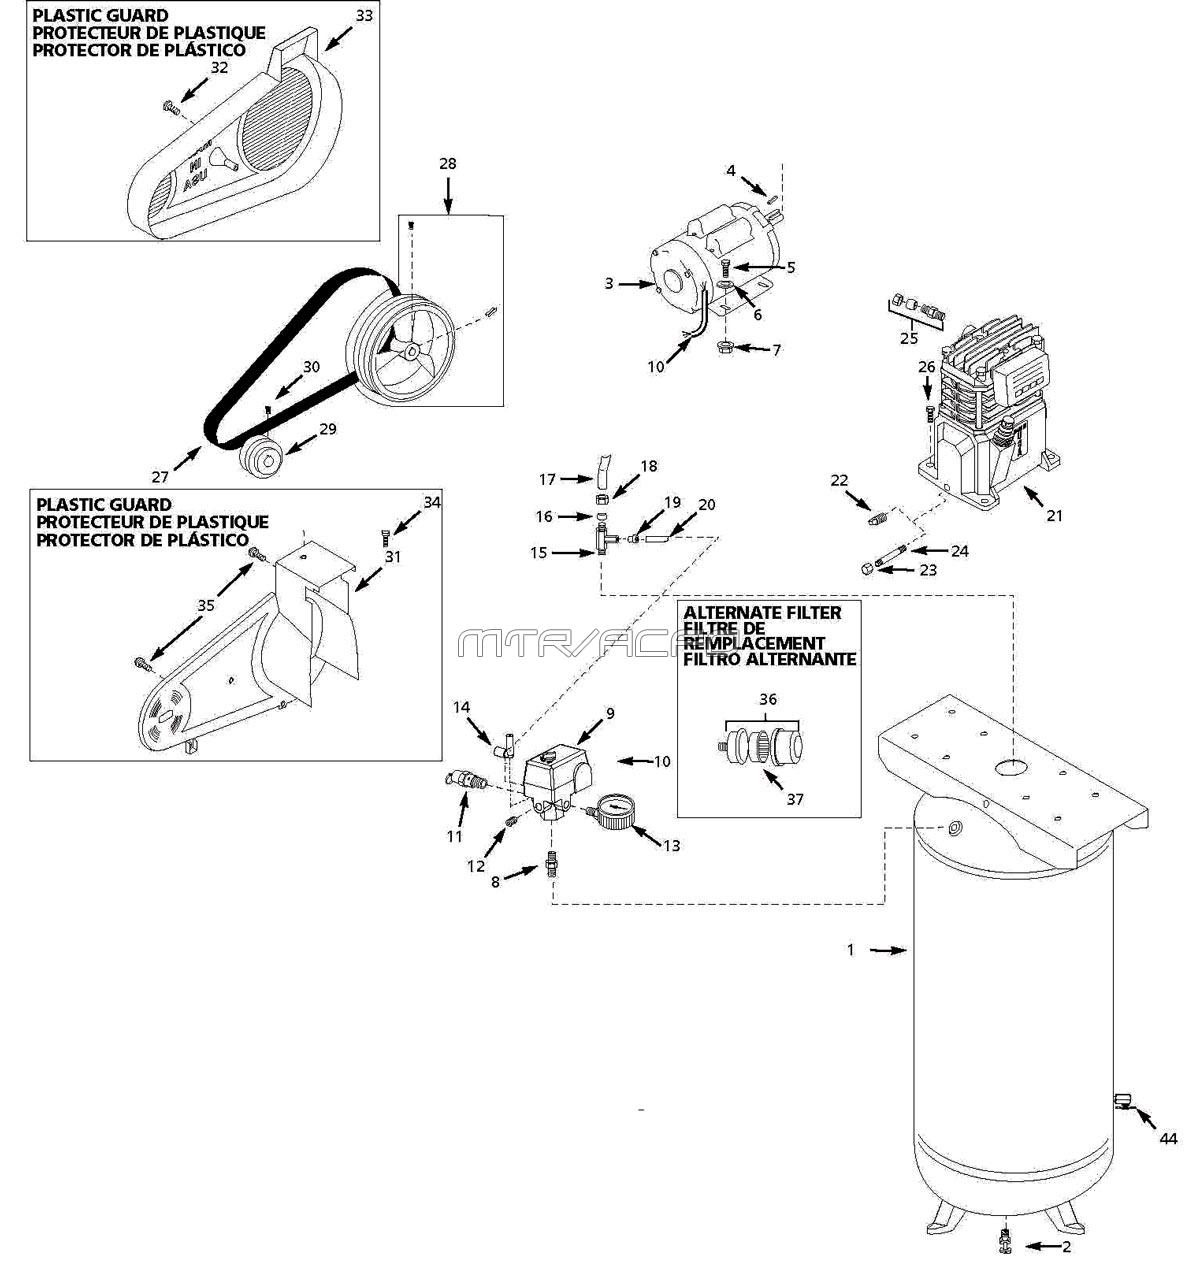 wiring diagram for boss air compressor with Senco Air  Pressor Wiring Diagram on 7623 Truck Wont Run furthermore Diagram For 2002 Cadillac Deville Stereo Wiring Harness moreover Senco Air  pressor Wiring Diagram moreover Cat C7 High Pressure Fuel Pump also Index Of Diy Schematics  pressors.